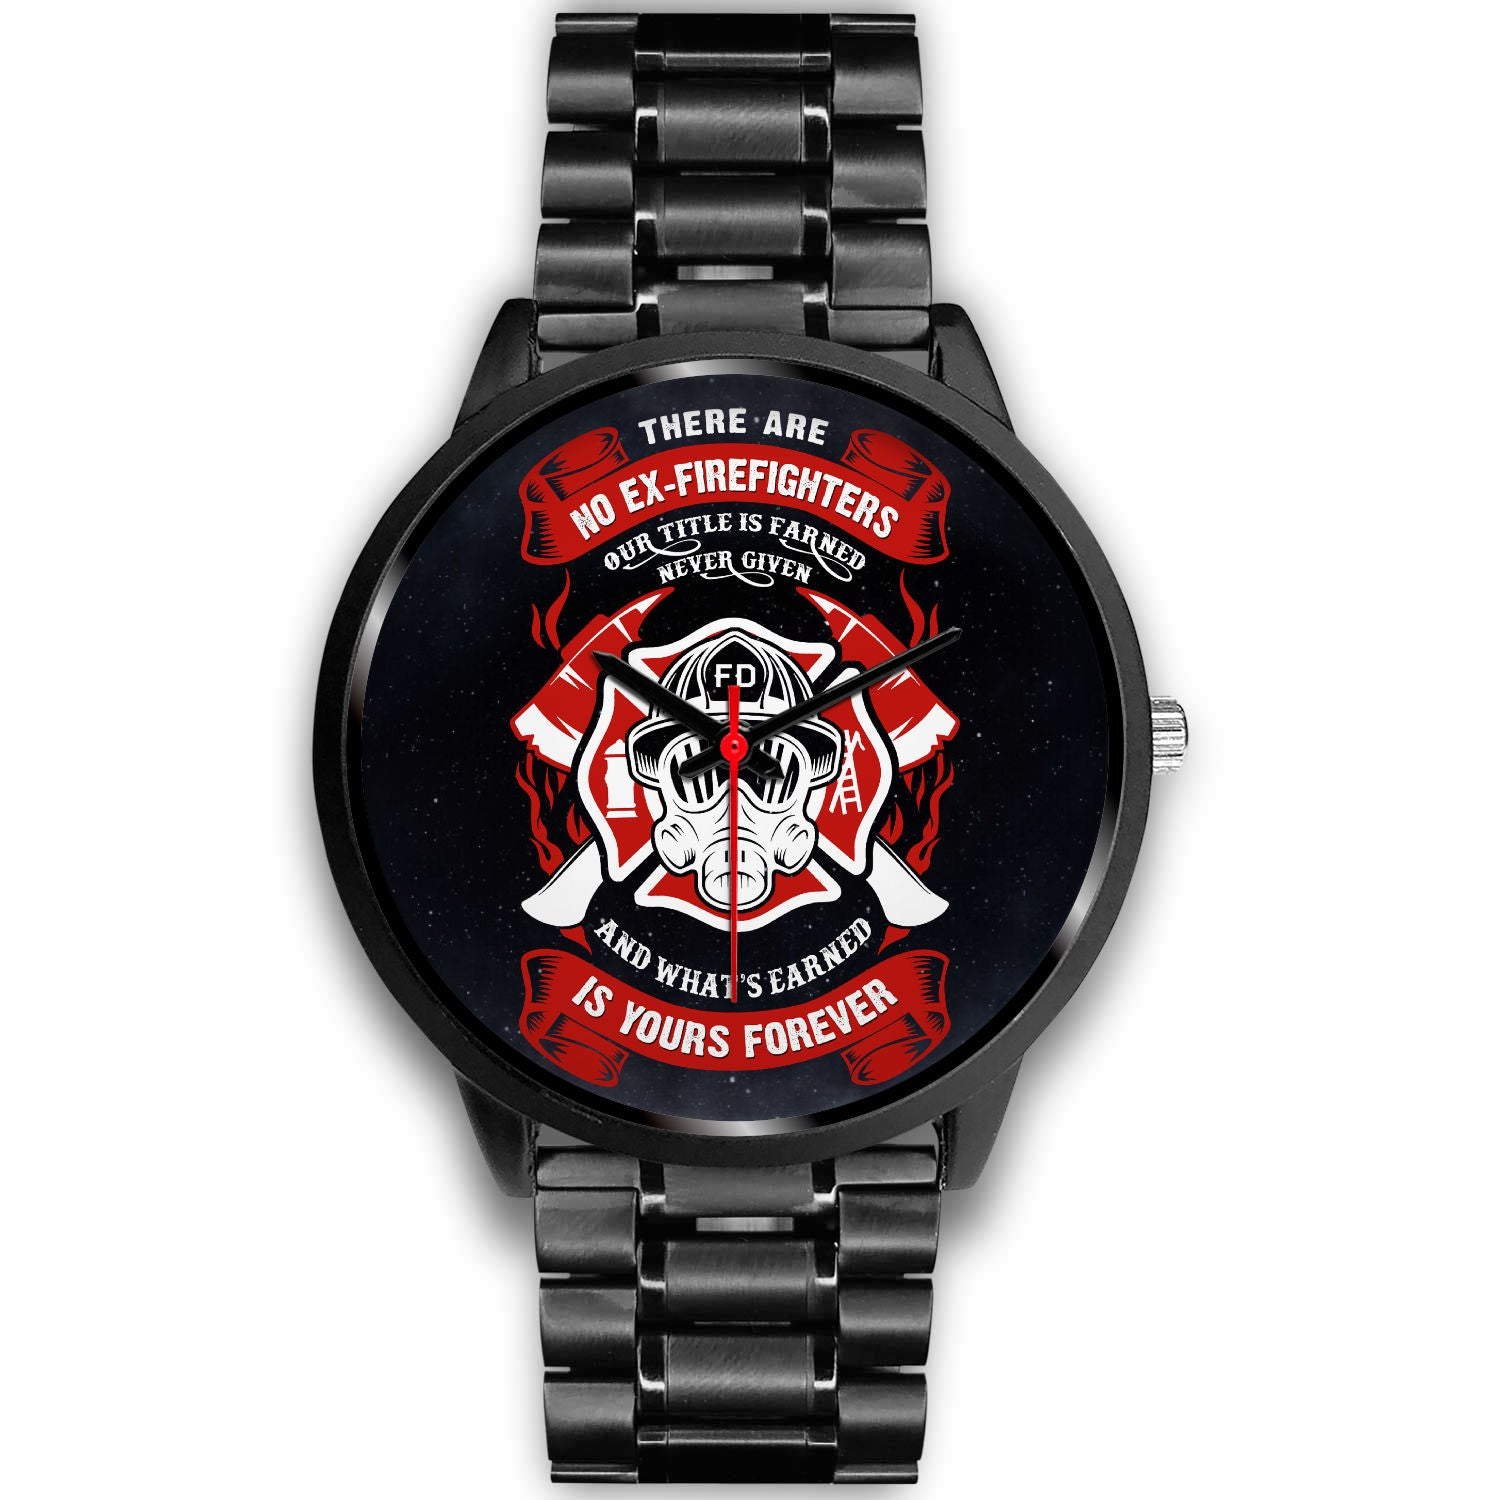 VIRA  stainless steel BAND WATCH FOR FIREFIGHTER LOVERS